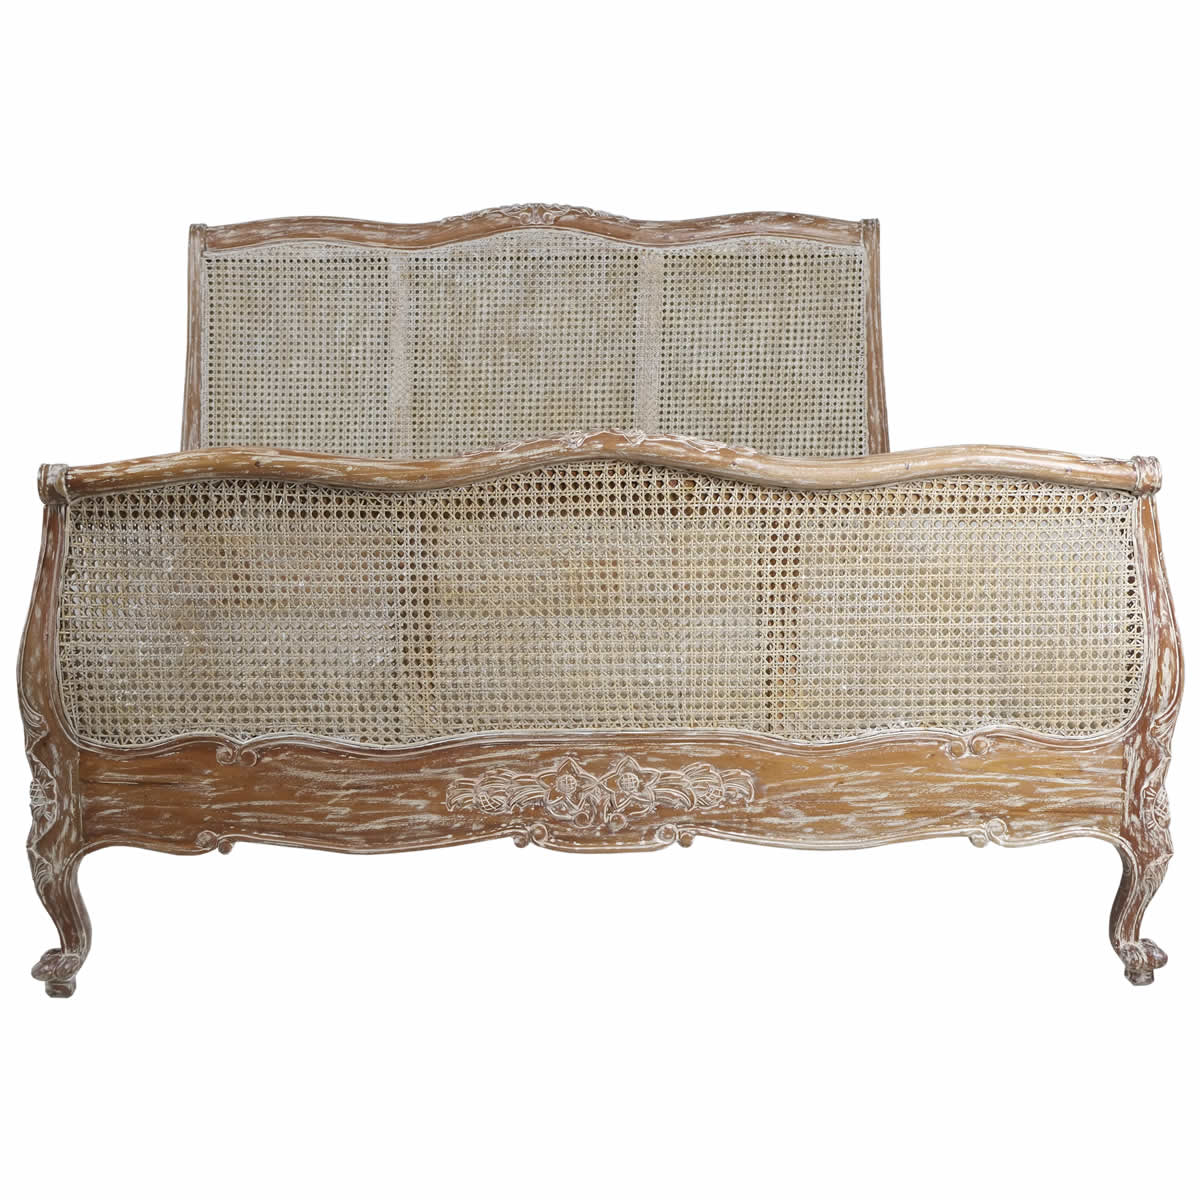 Louis rattan bed white wash